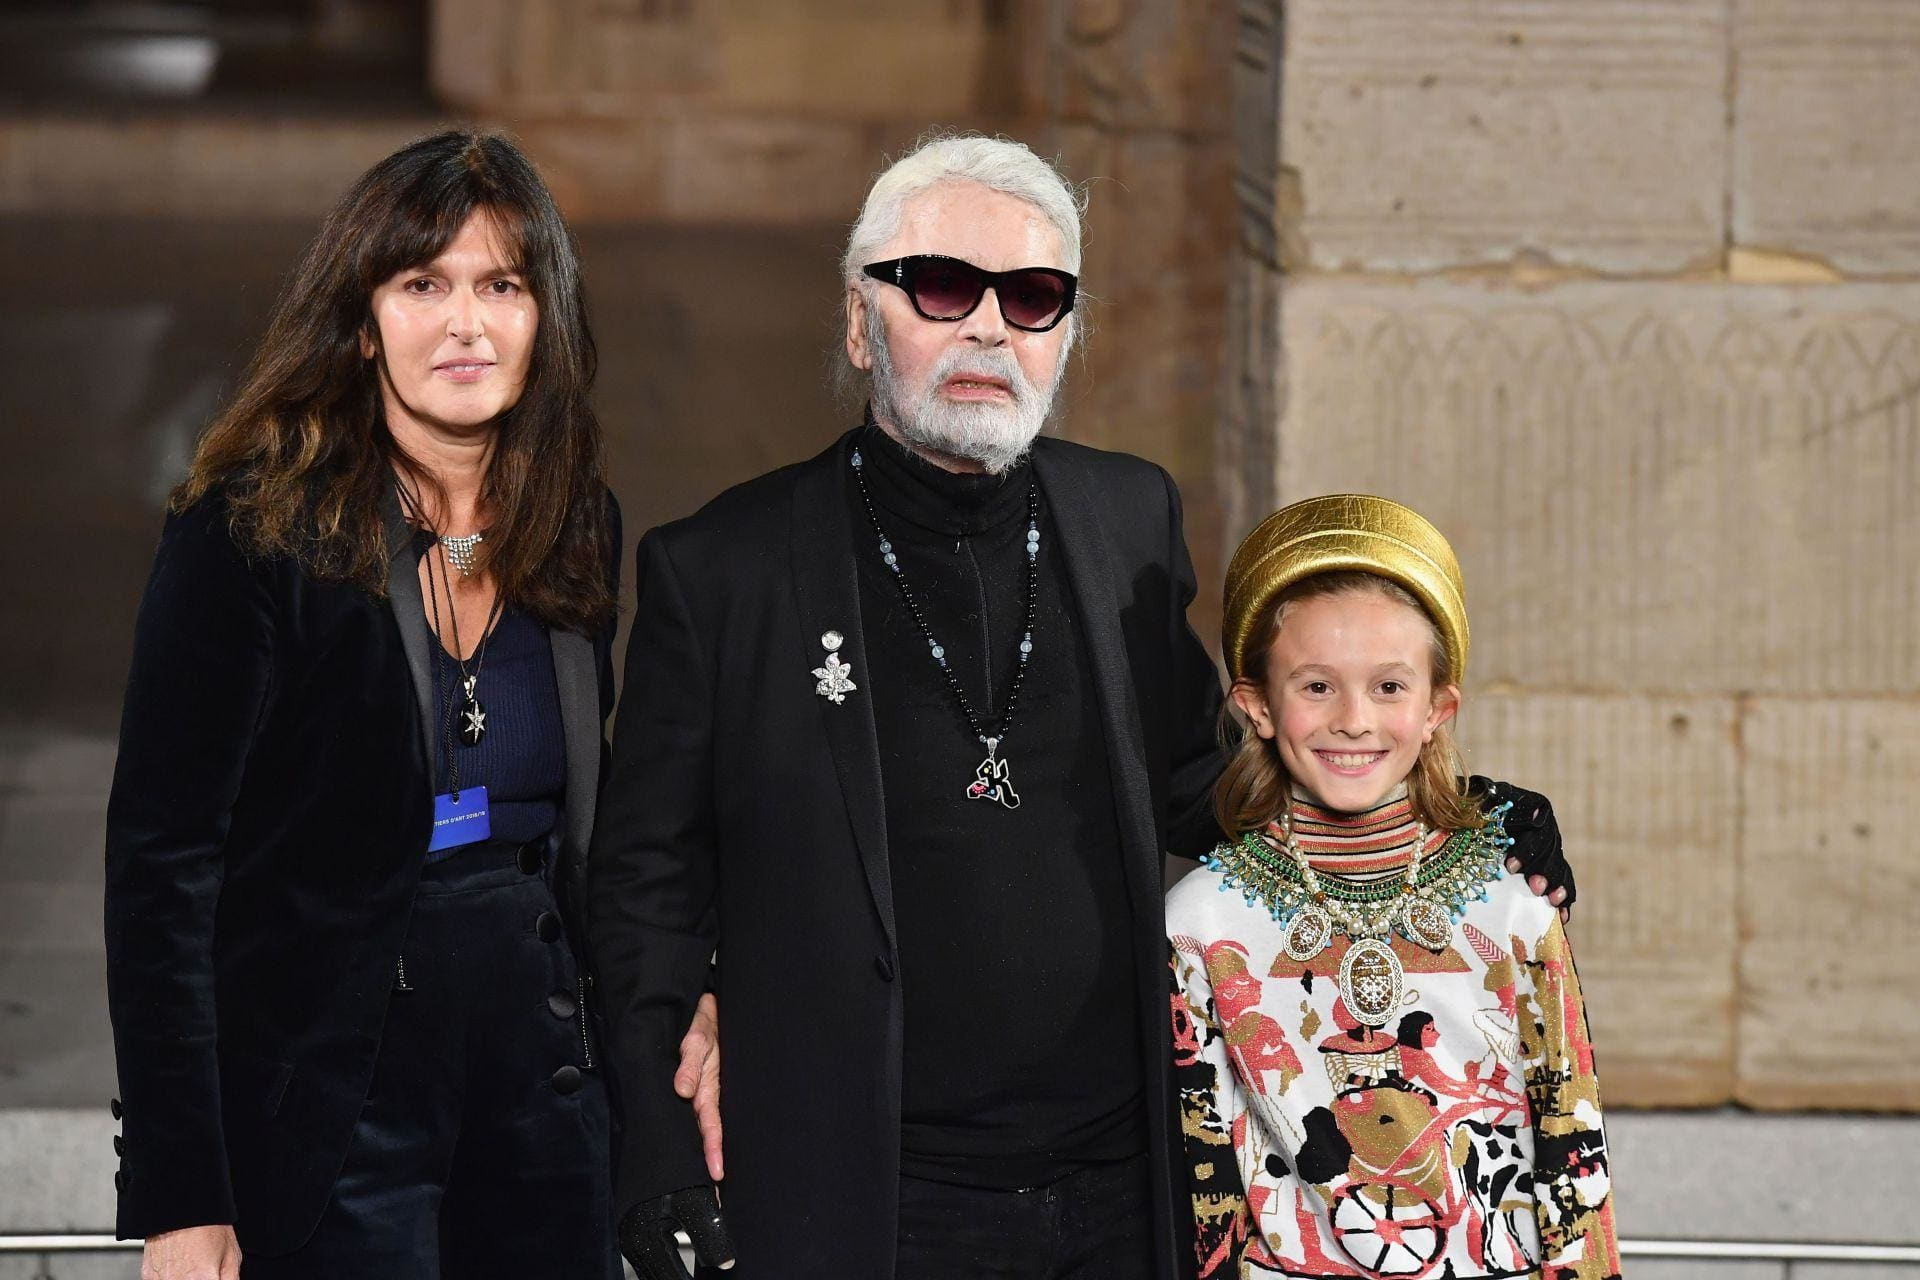 Karl Lagerfeld walks the runway with Virginie Viard and his godson Hudson Kroenig during the Chanel Métiers d'Art 2018 show at The Metropolitan Museum of Art in New York City. Image credit: Angela Weiss / AFP